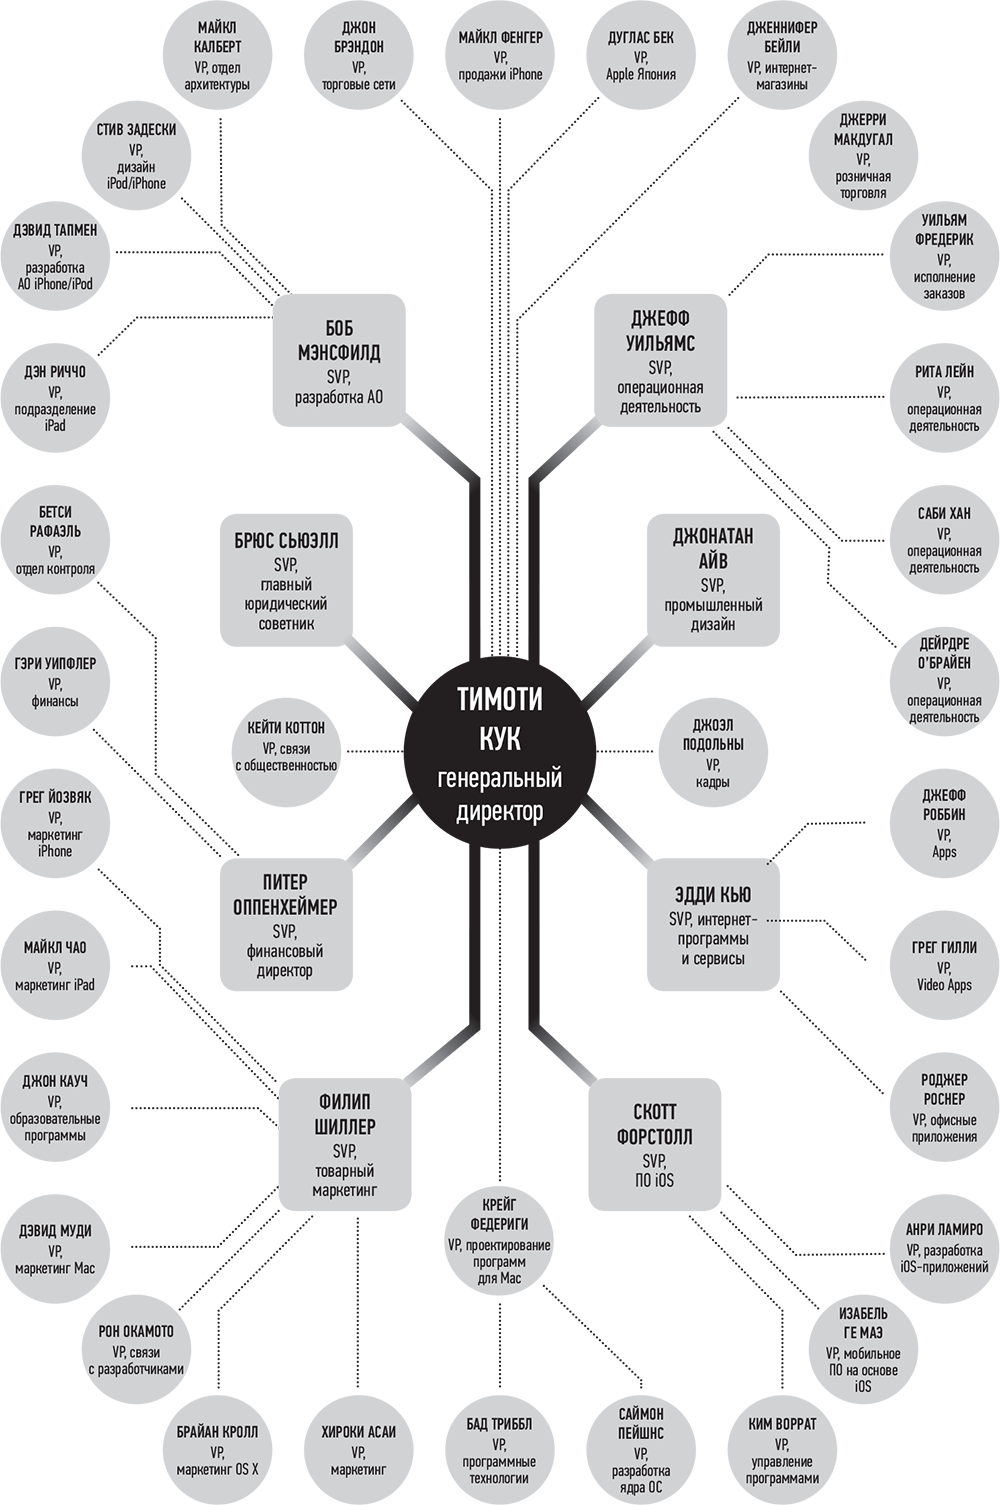 organizational structure of apple inc Apple inc organizational structure organization or business has to have organizational structure in order to succeed because it prioritizes the hierarchy.